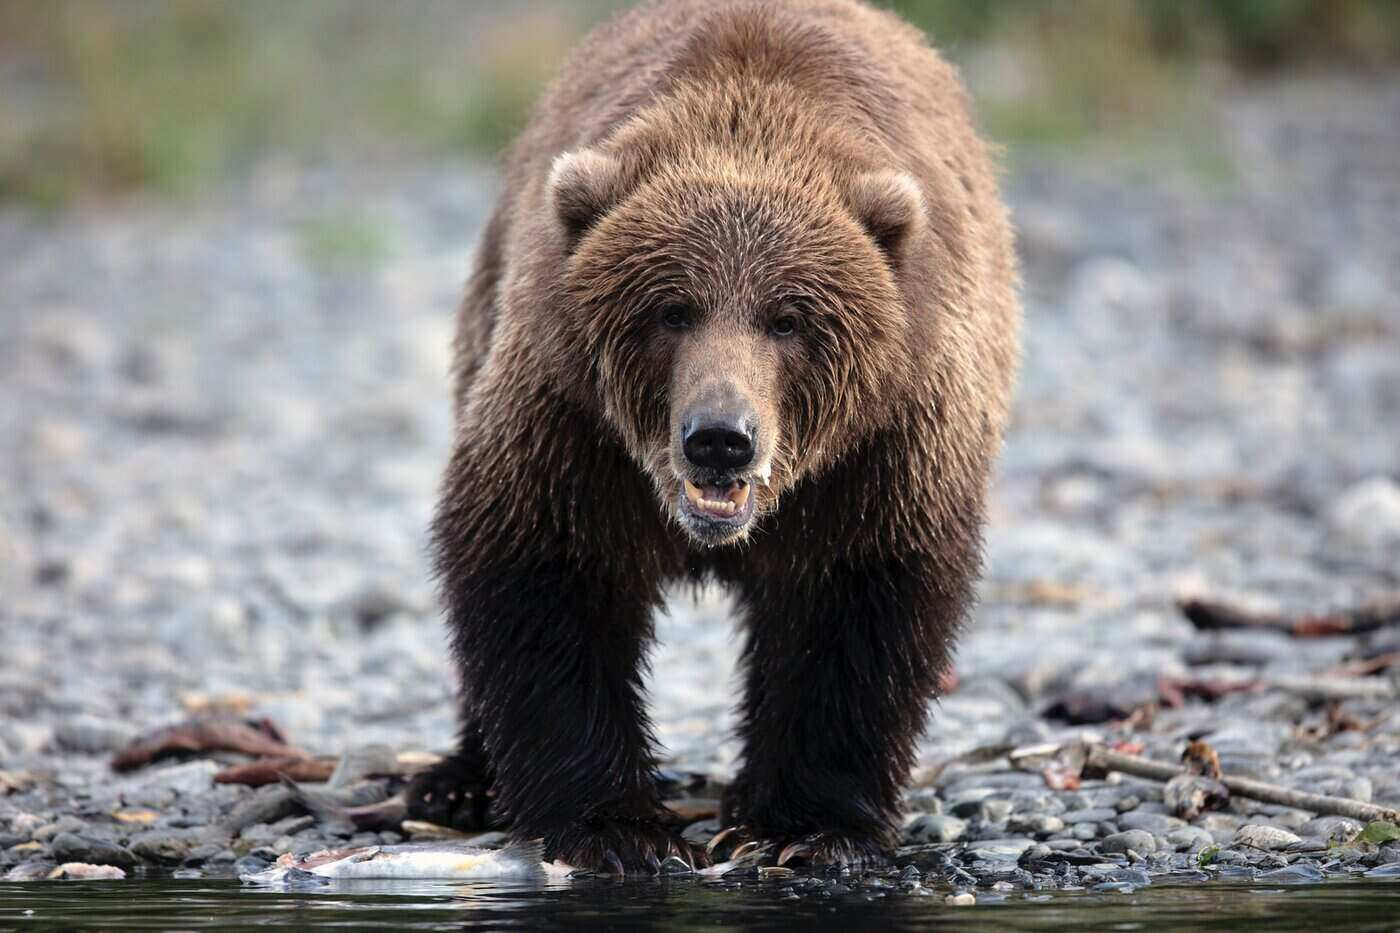 kodiak bear by water - all about the worlds largest bear species